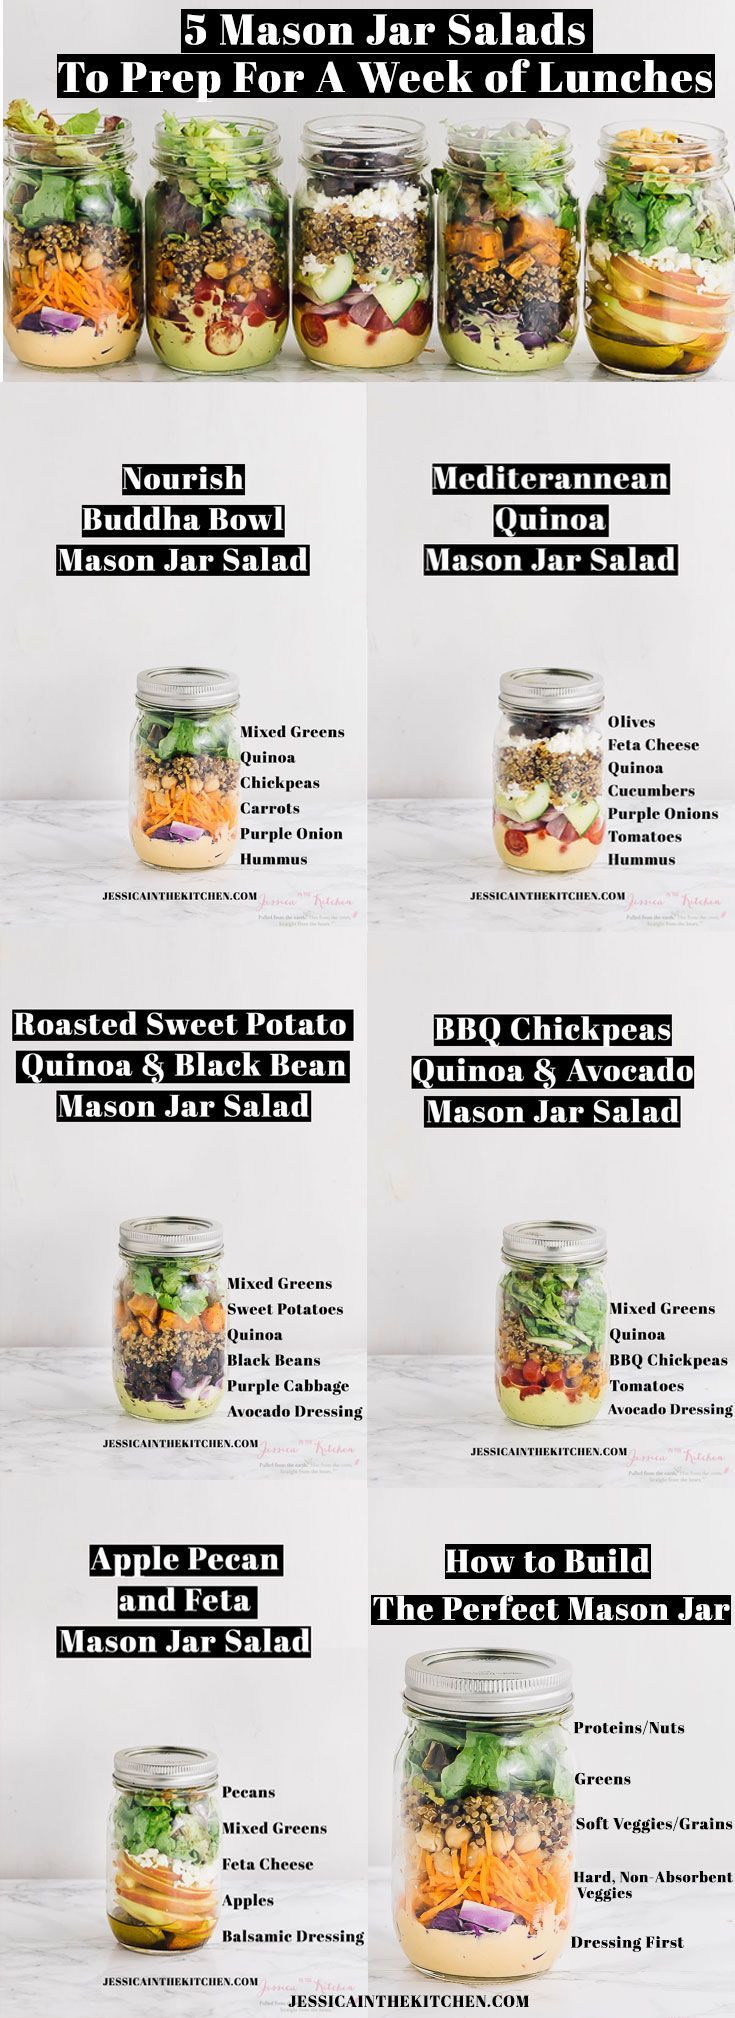 5 Mason Jar Salads To Meal Prep for a Week of Lunches #weeklymealprep